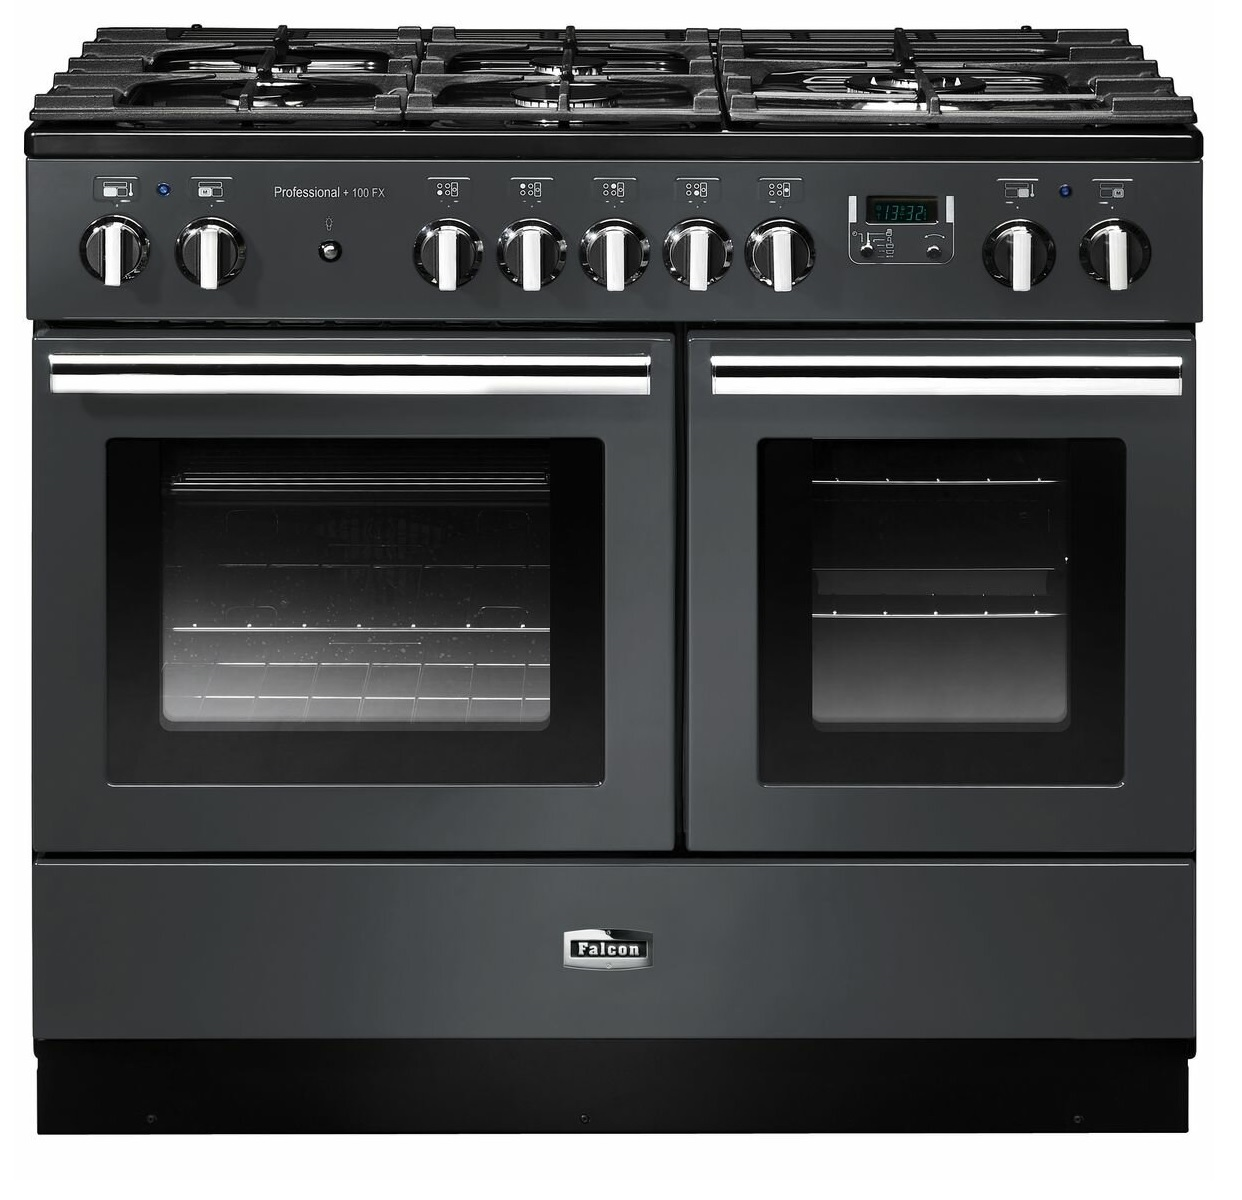 Falcon PROPL100FXDFSL-CHLPG Oven